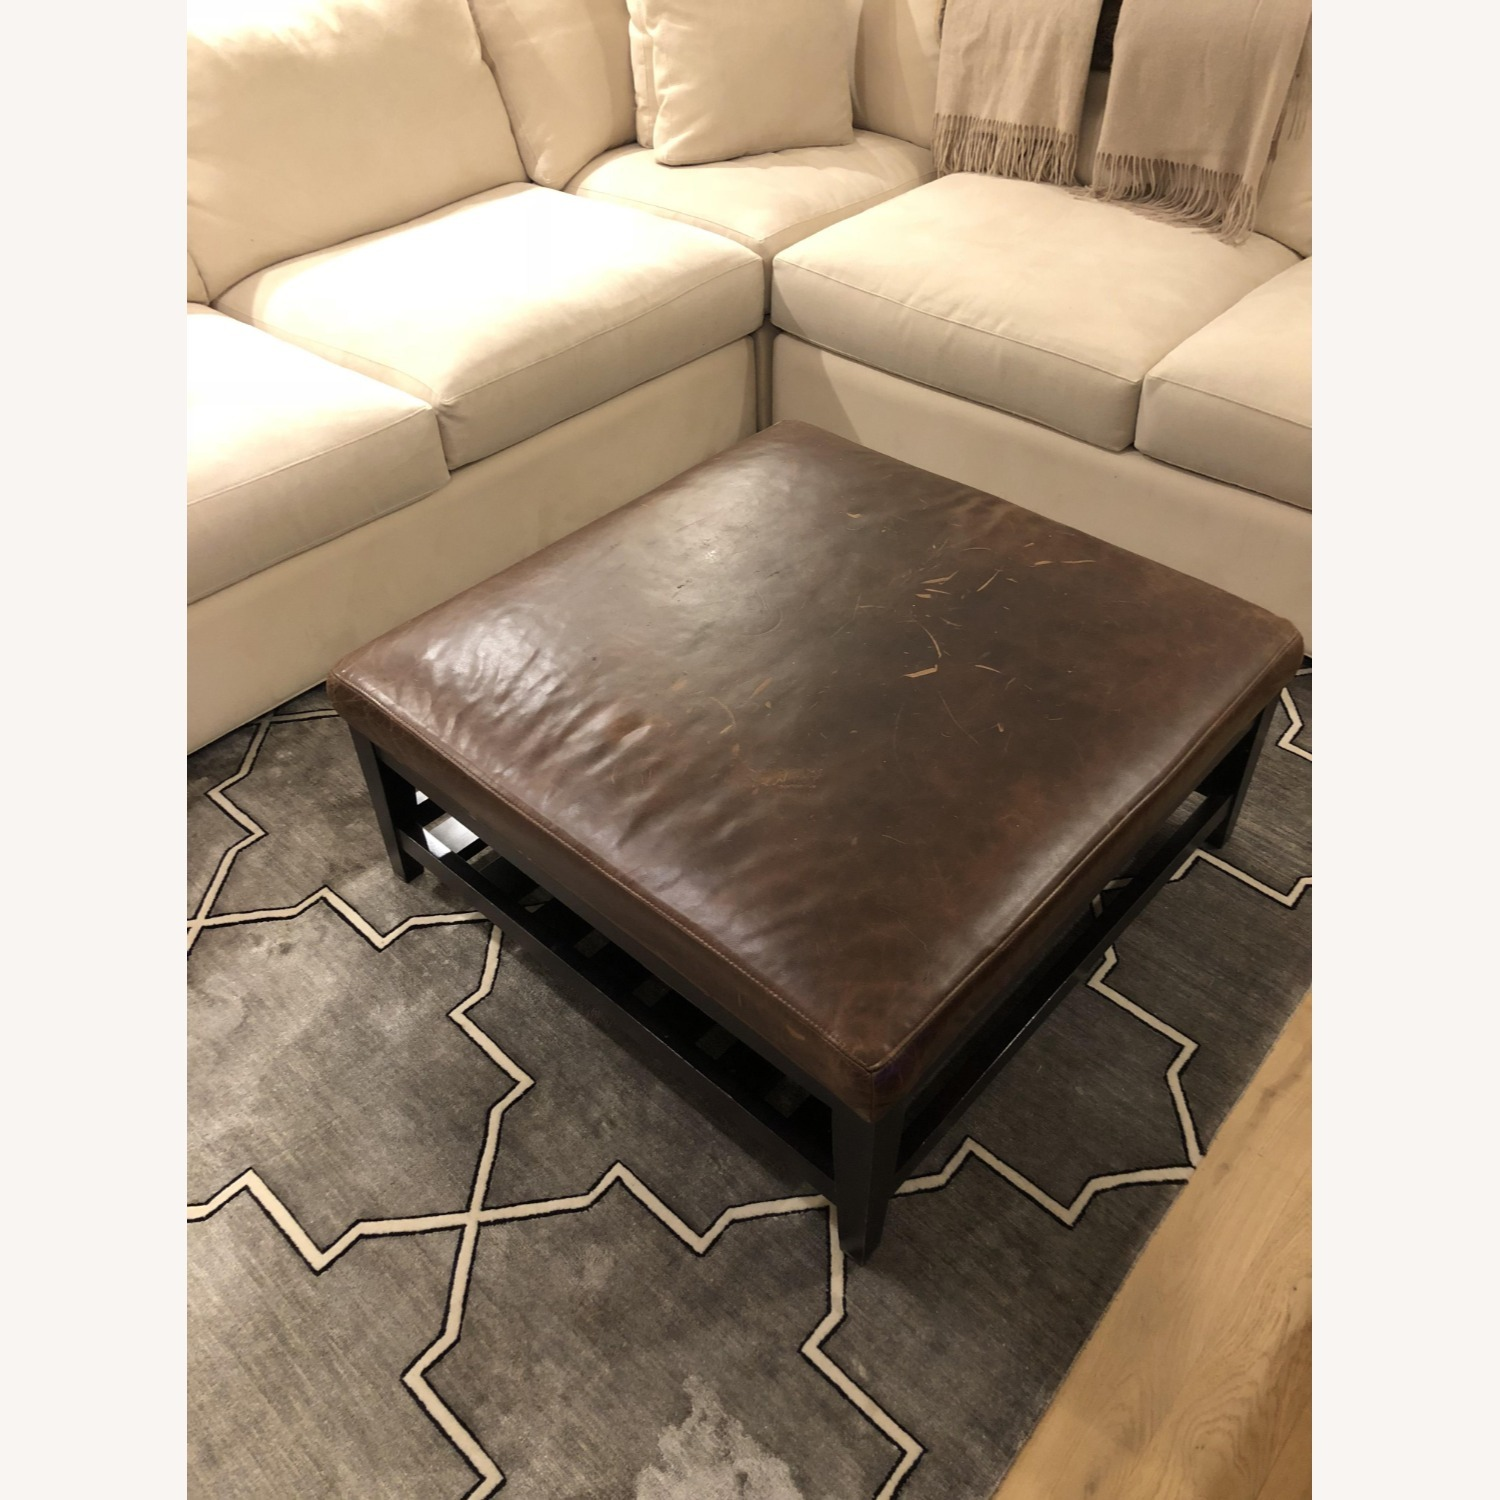 Crate & Barrel Leather & Wood Coffee Table/Ottoman - image-3